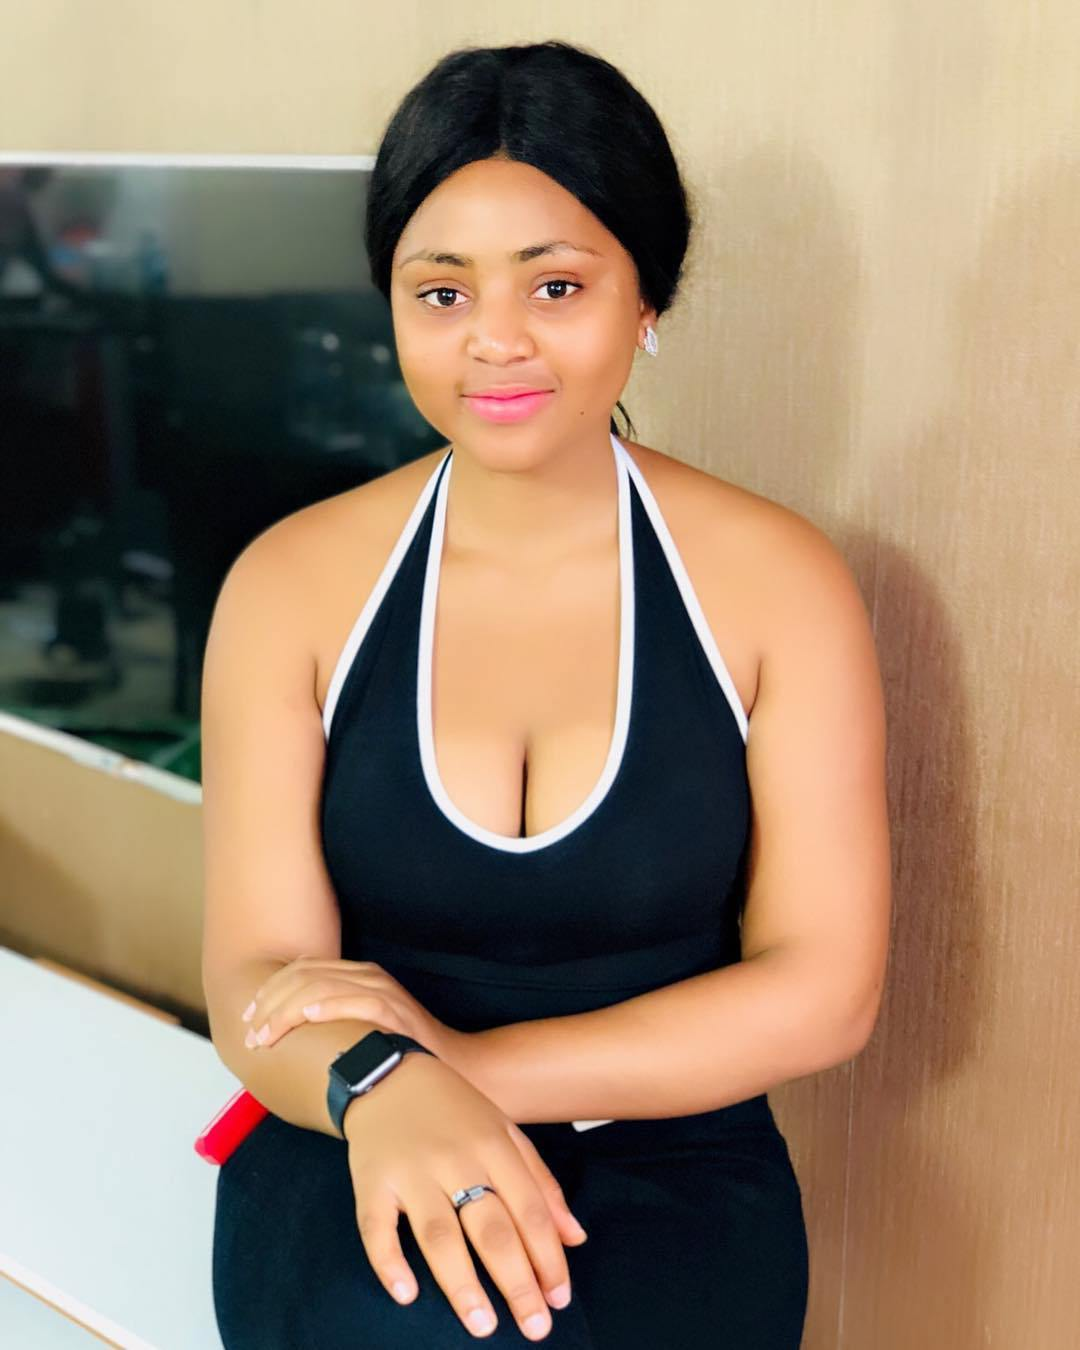 Regina Daniels Shows Off Cleavage Caught Smoking In New Photos Cleavage is the narrow depression or hollow between human breasts. off cleavage caught smoking in new photos